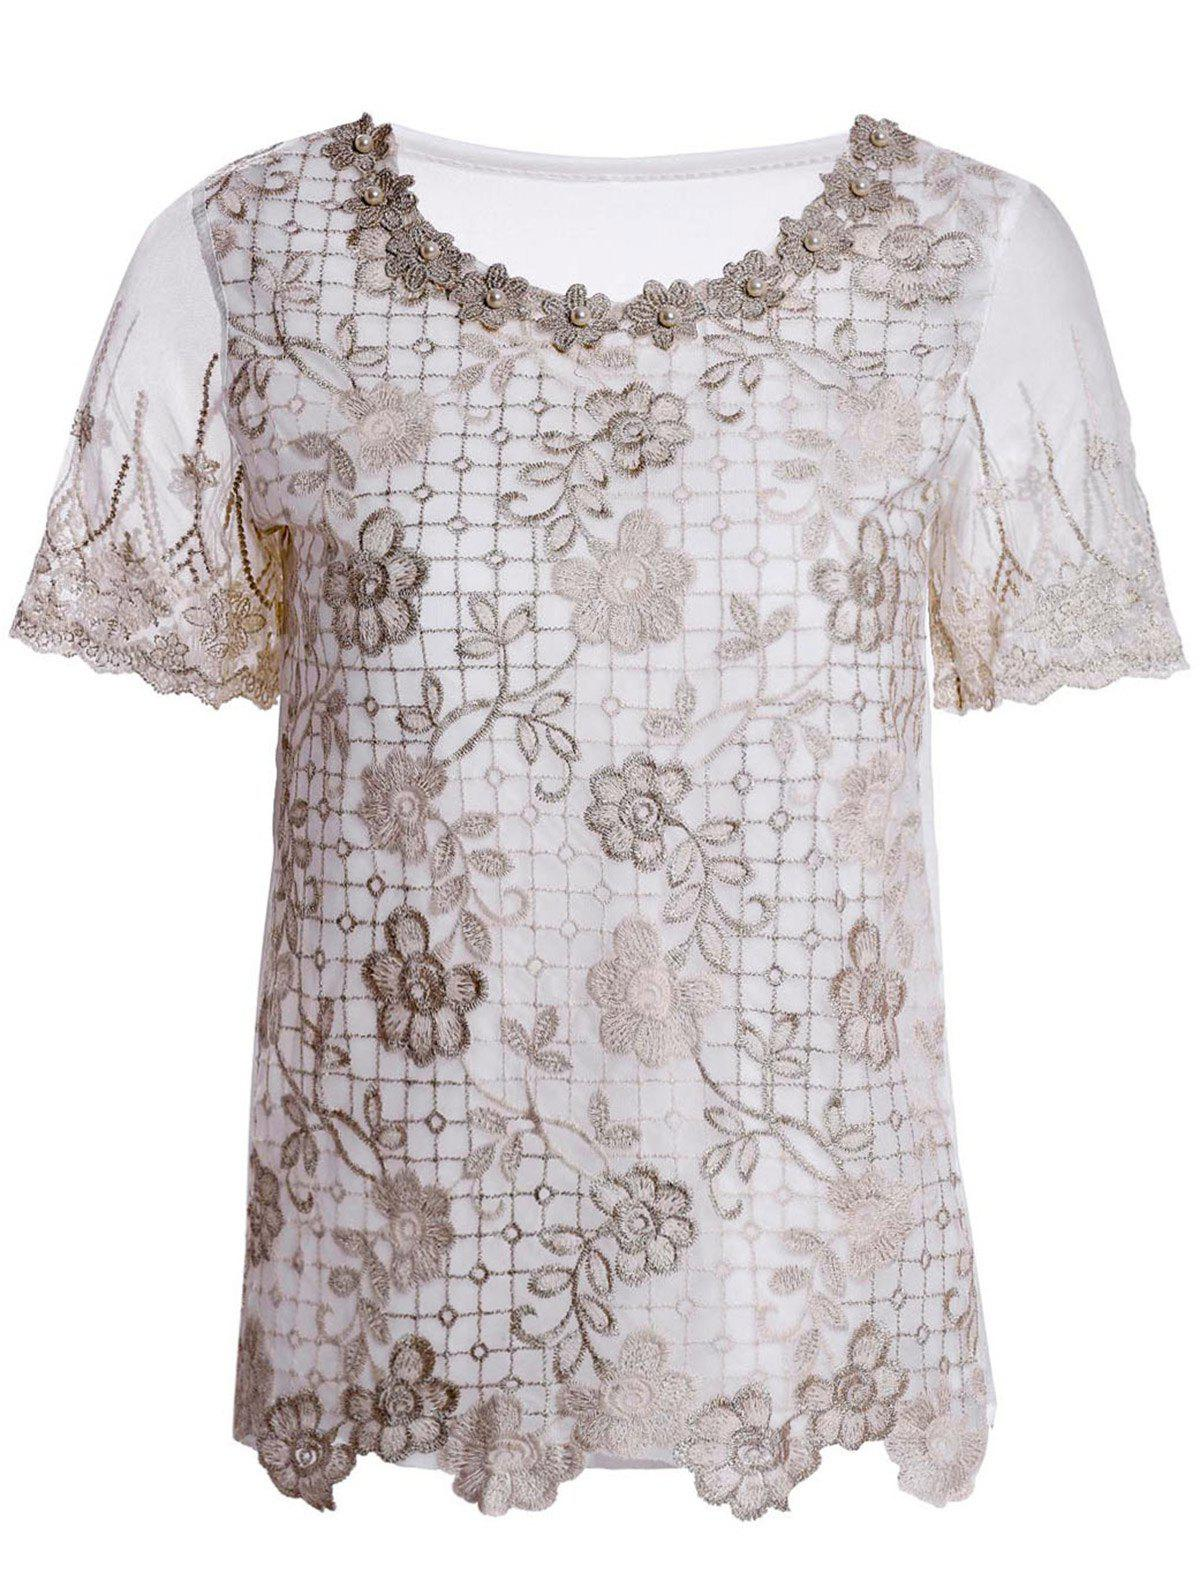 Fancy Refreshing Scoop Neck Faux Pearl Beaded Embellished Lace Splicing Women's Blouse